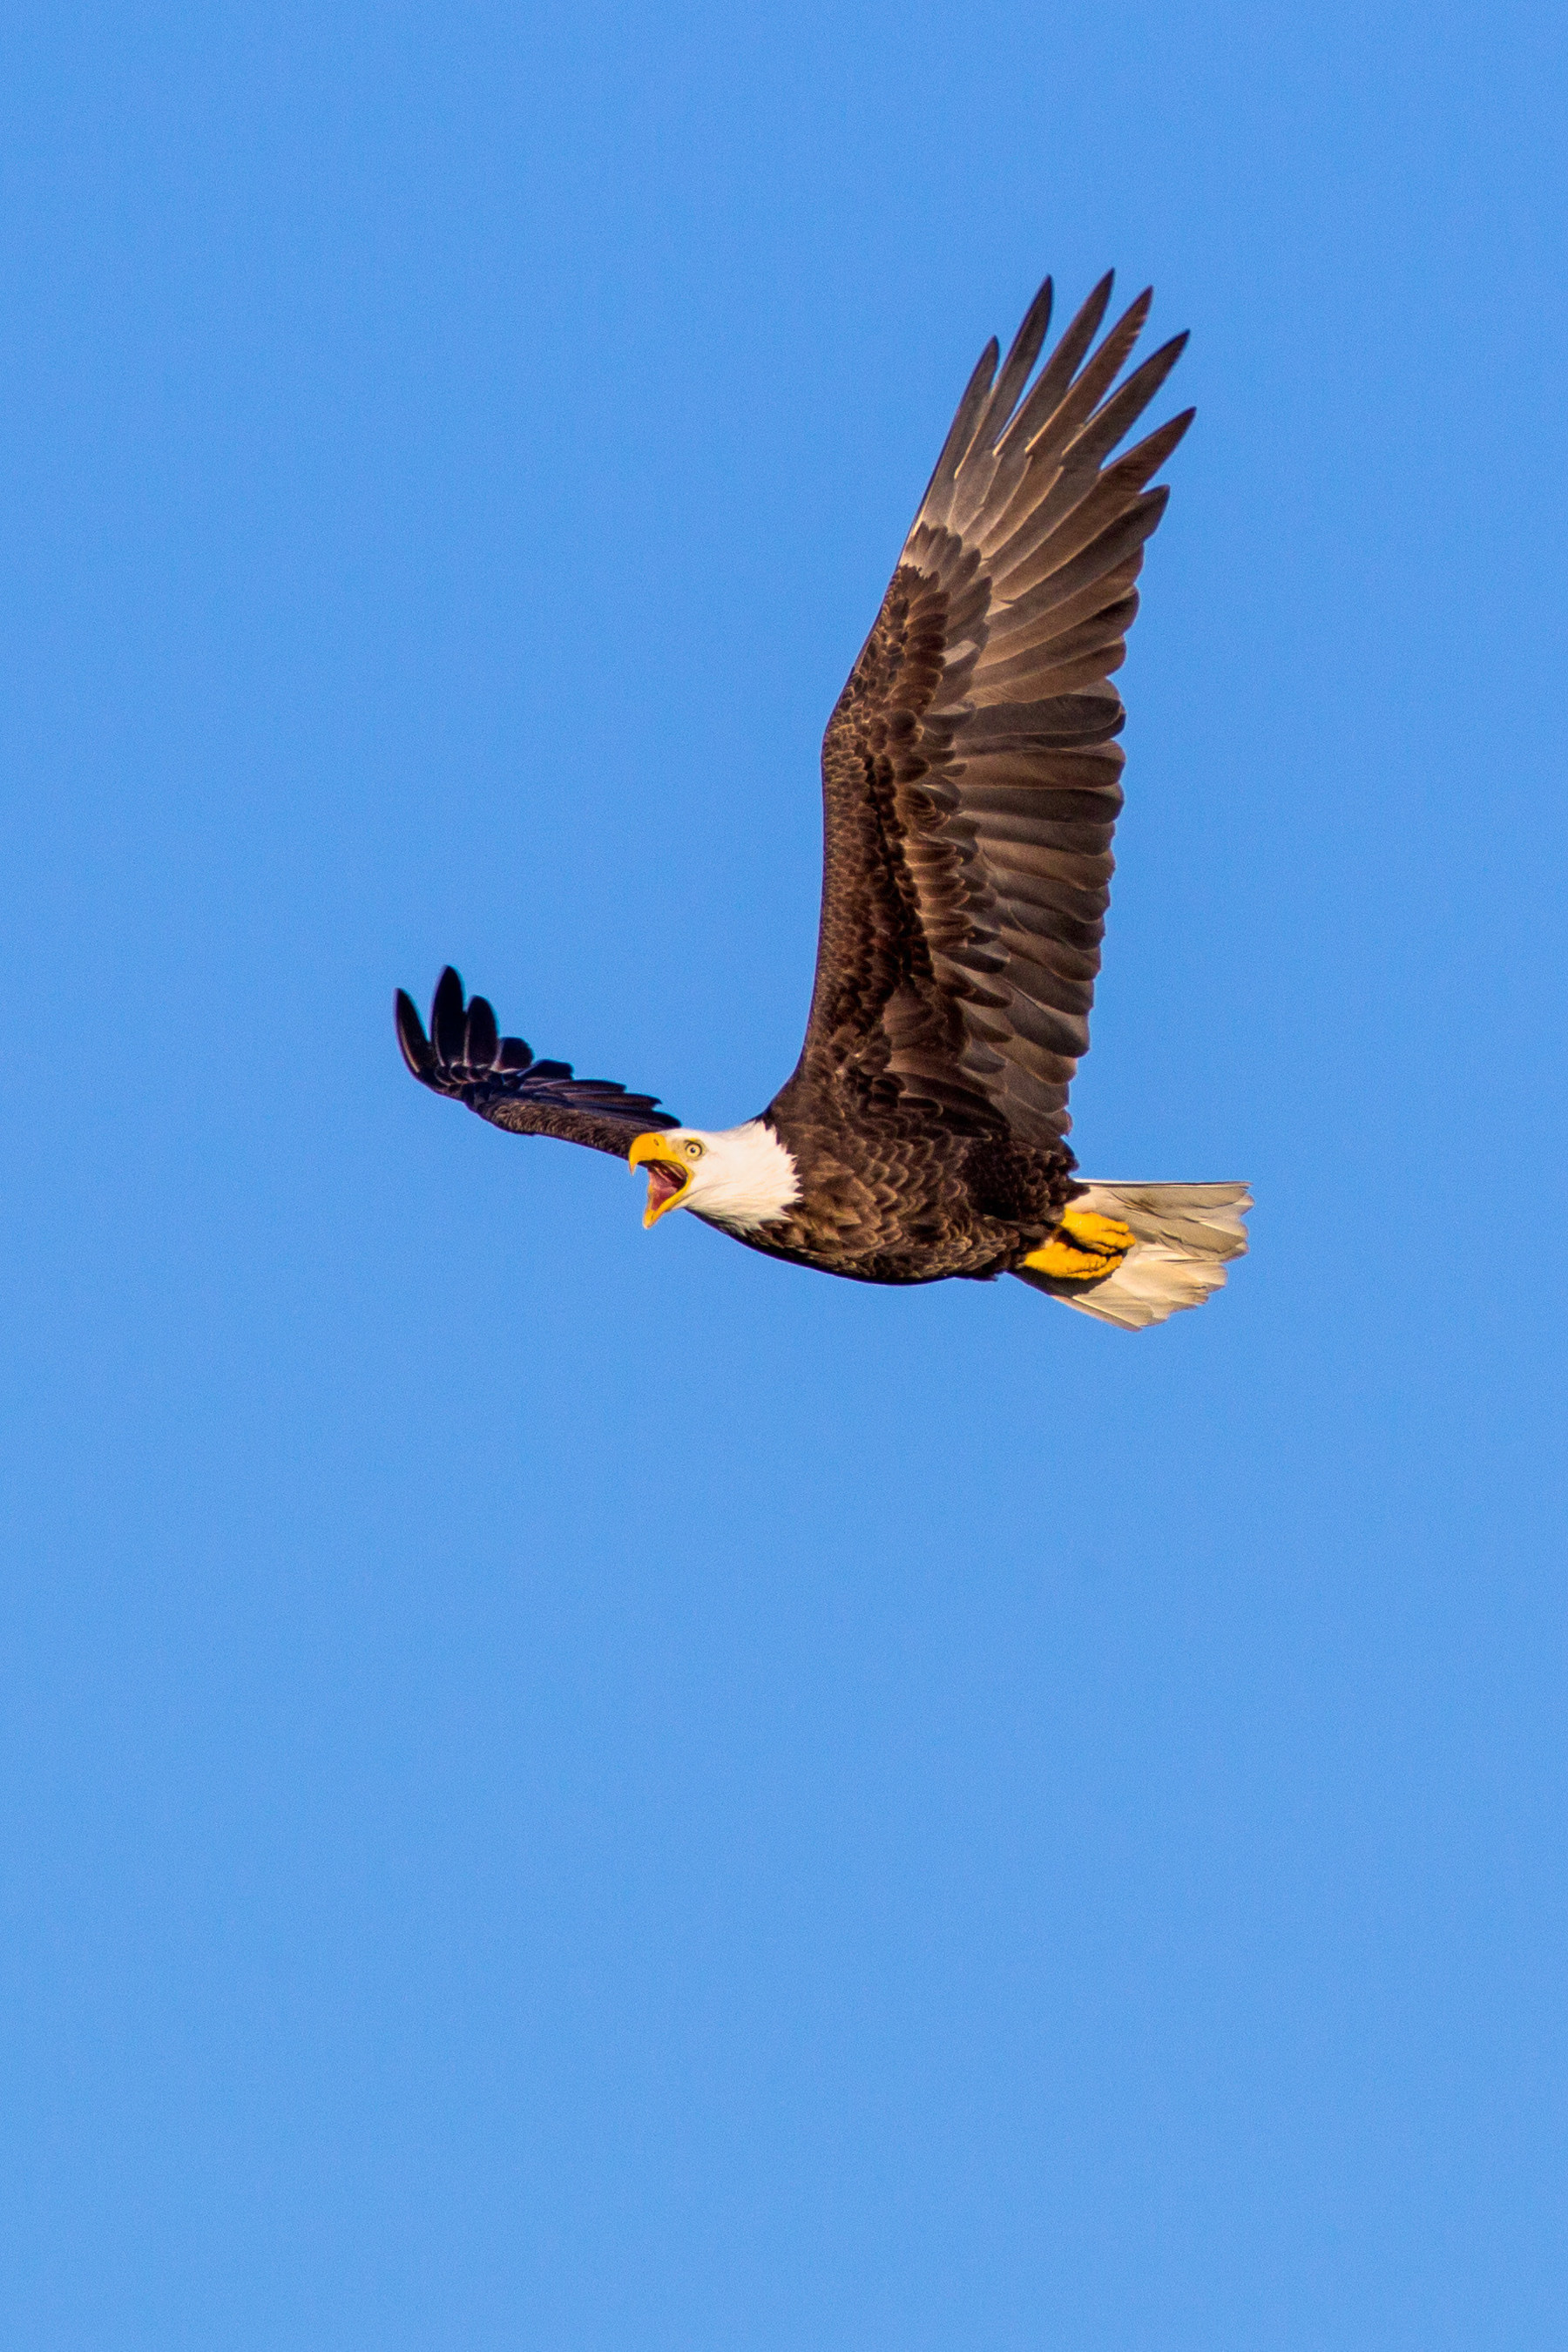 A pair of nesting bald eagles return regularly to the Ranch, and are just one of the many species of animals thriving there.